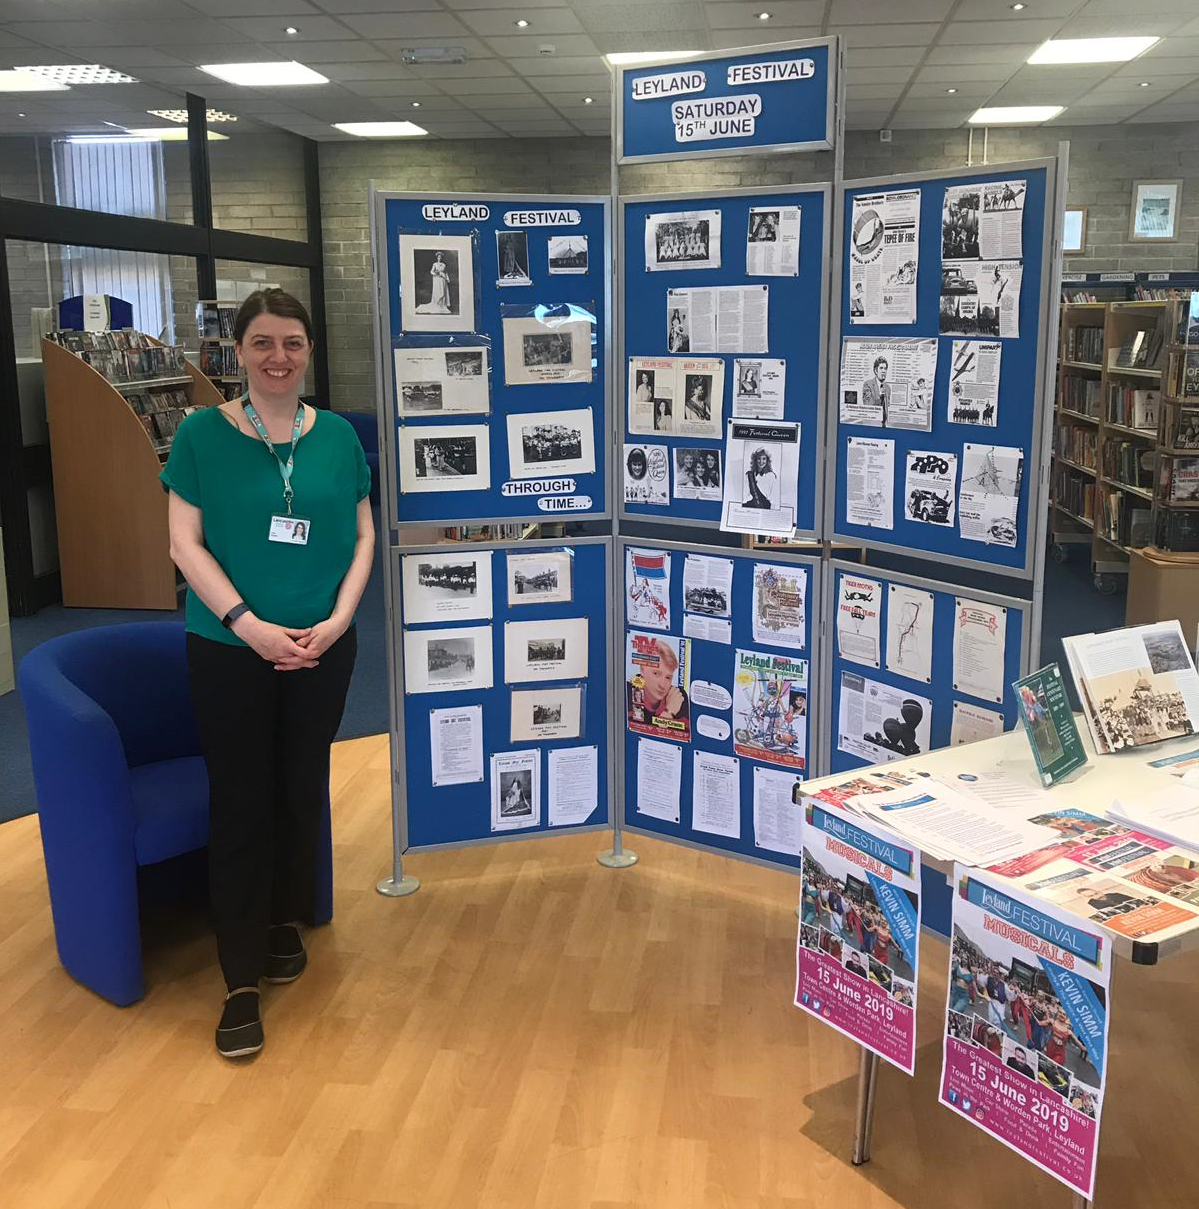 Leyland Library Opens Festival Archives